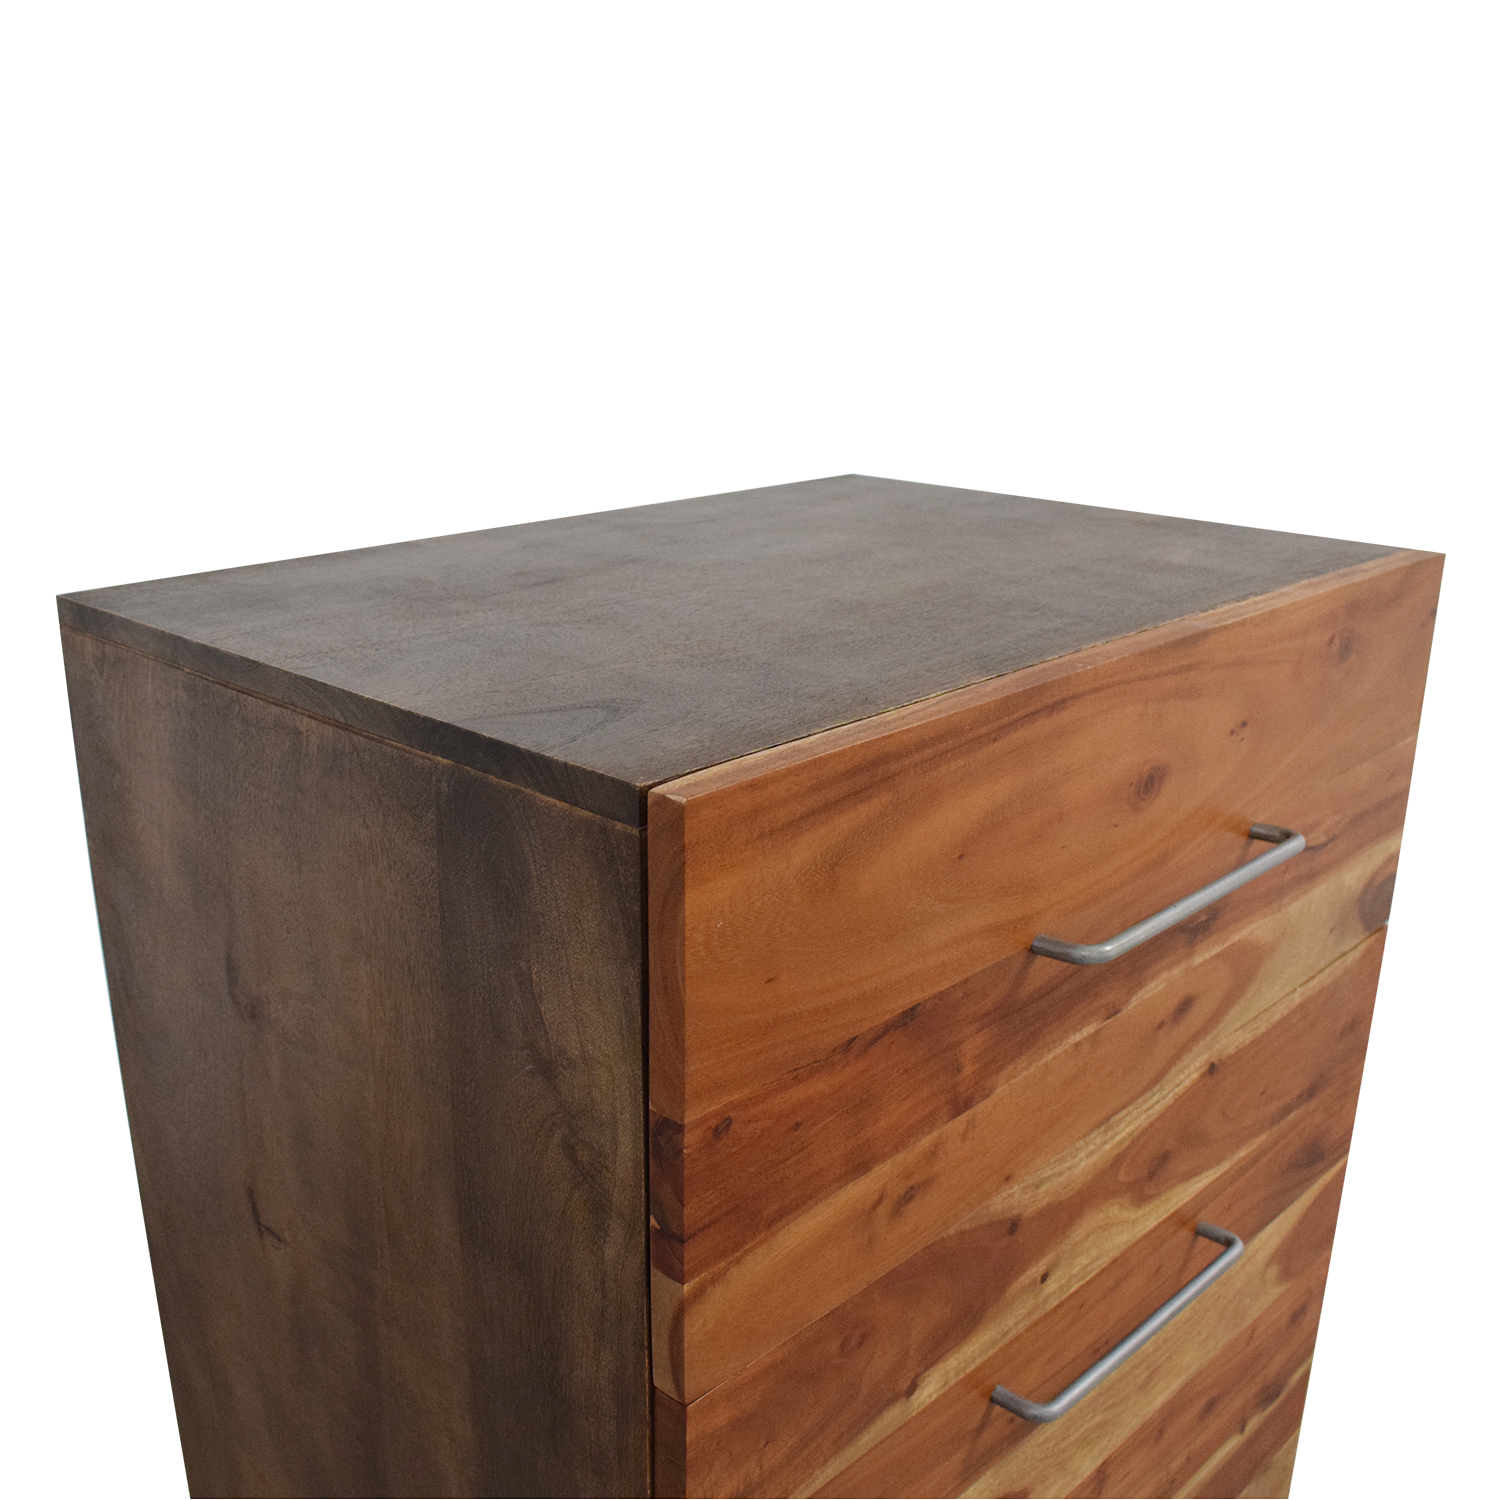 CB2 CB2 Rustic Junction Tall Chest for sale